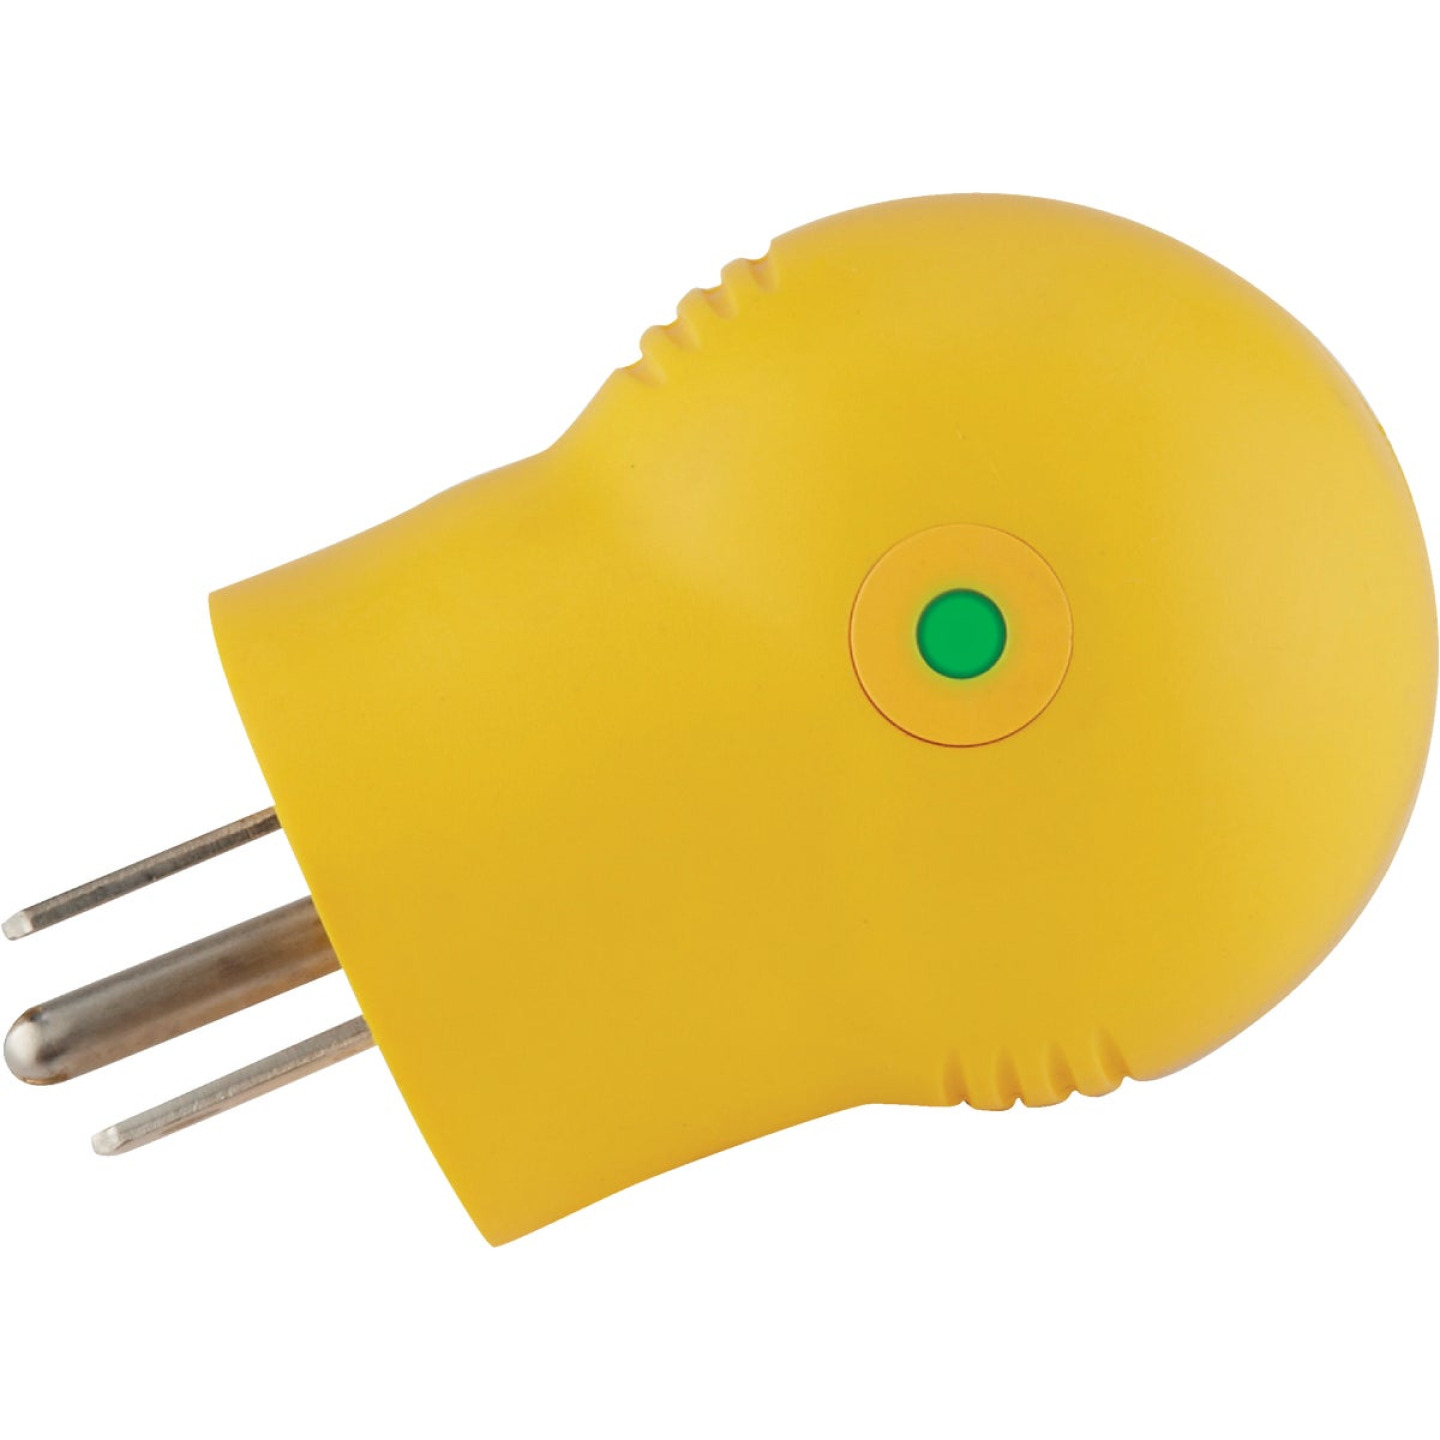 Camco Power Grip 15A Male to 30A Female 90 Deg RV Plug Adapter Image 2